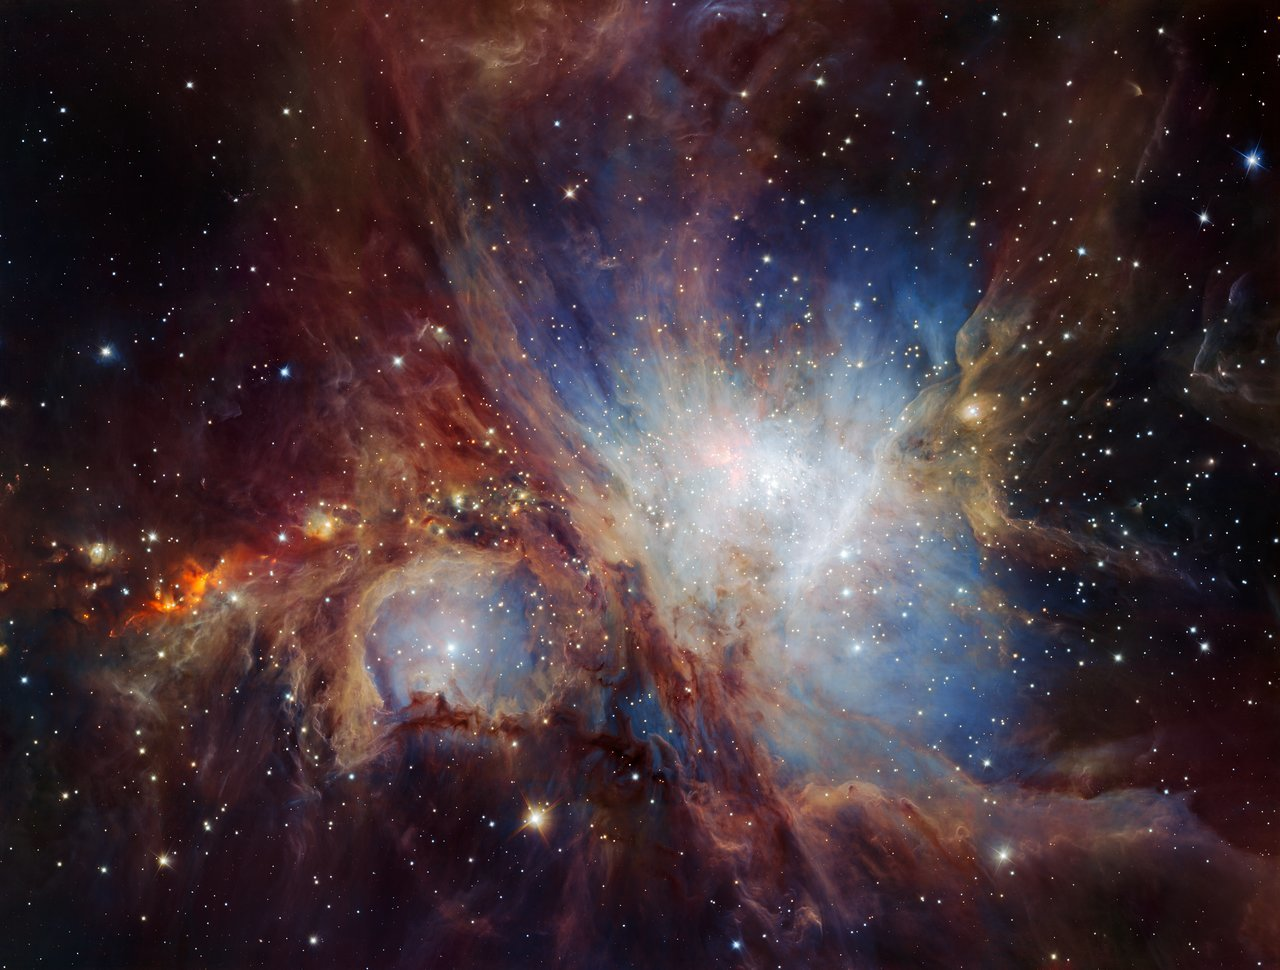 A deep-infrared view of the Orion nebula.